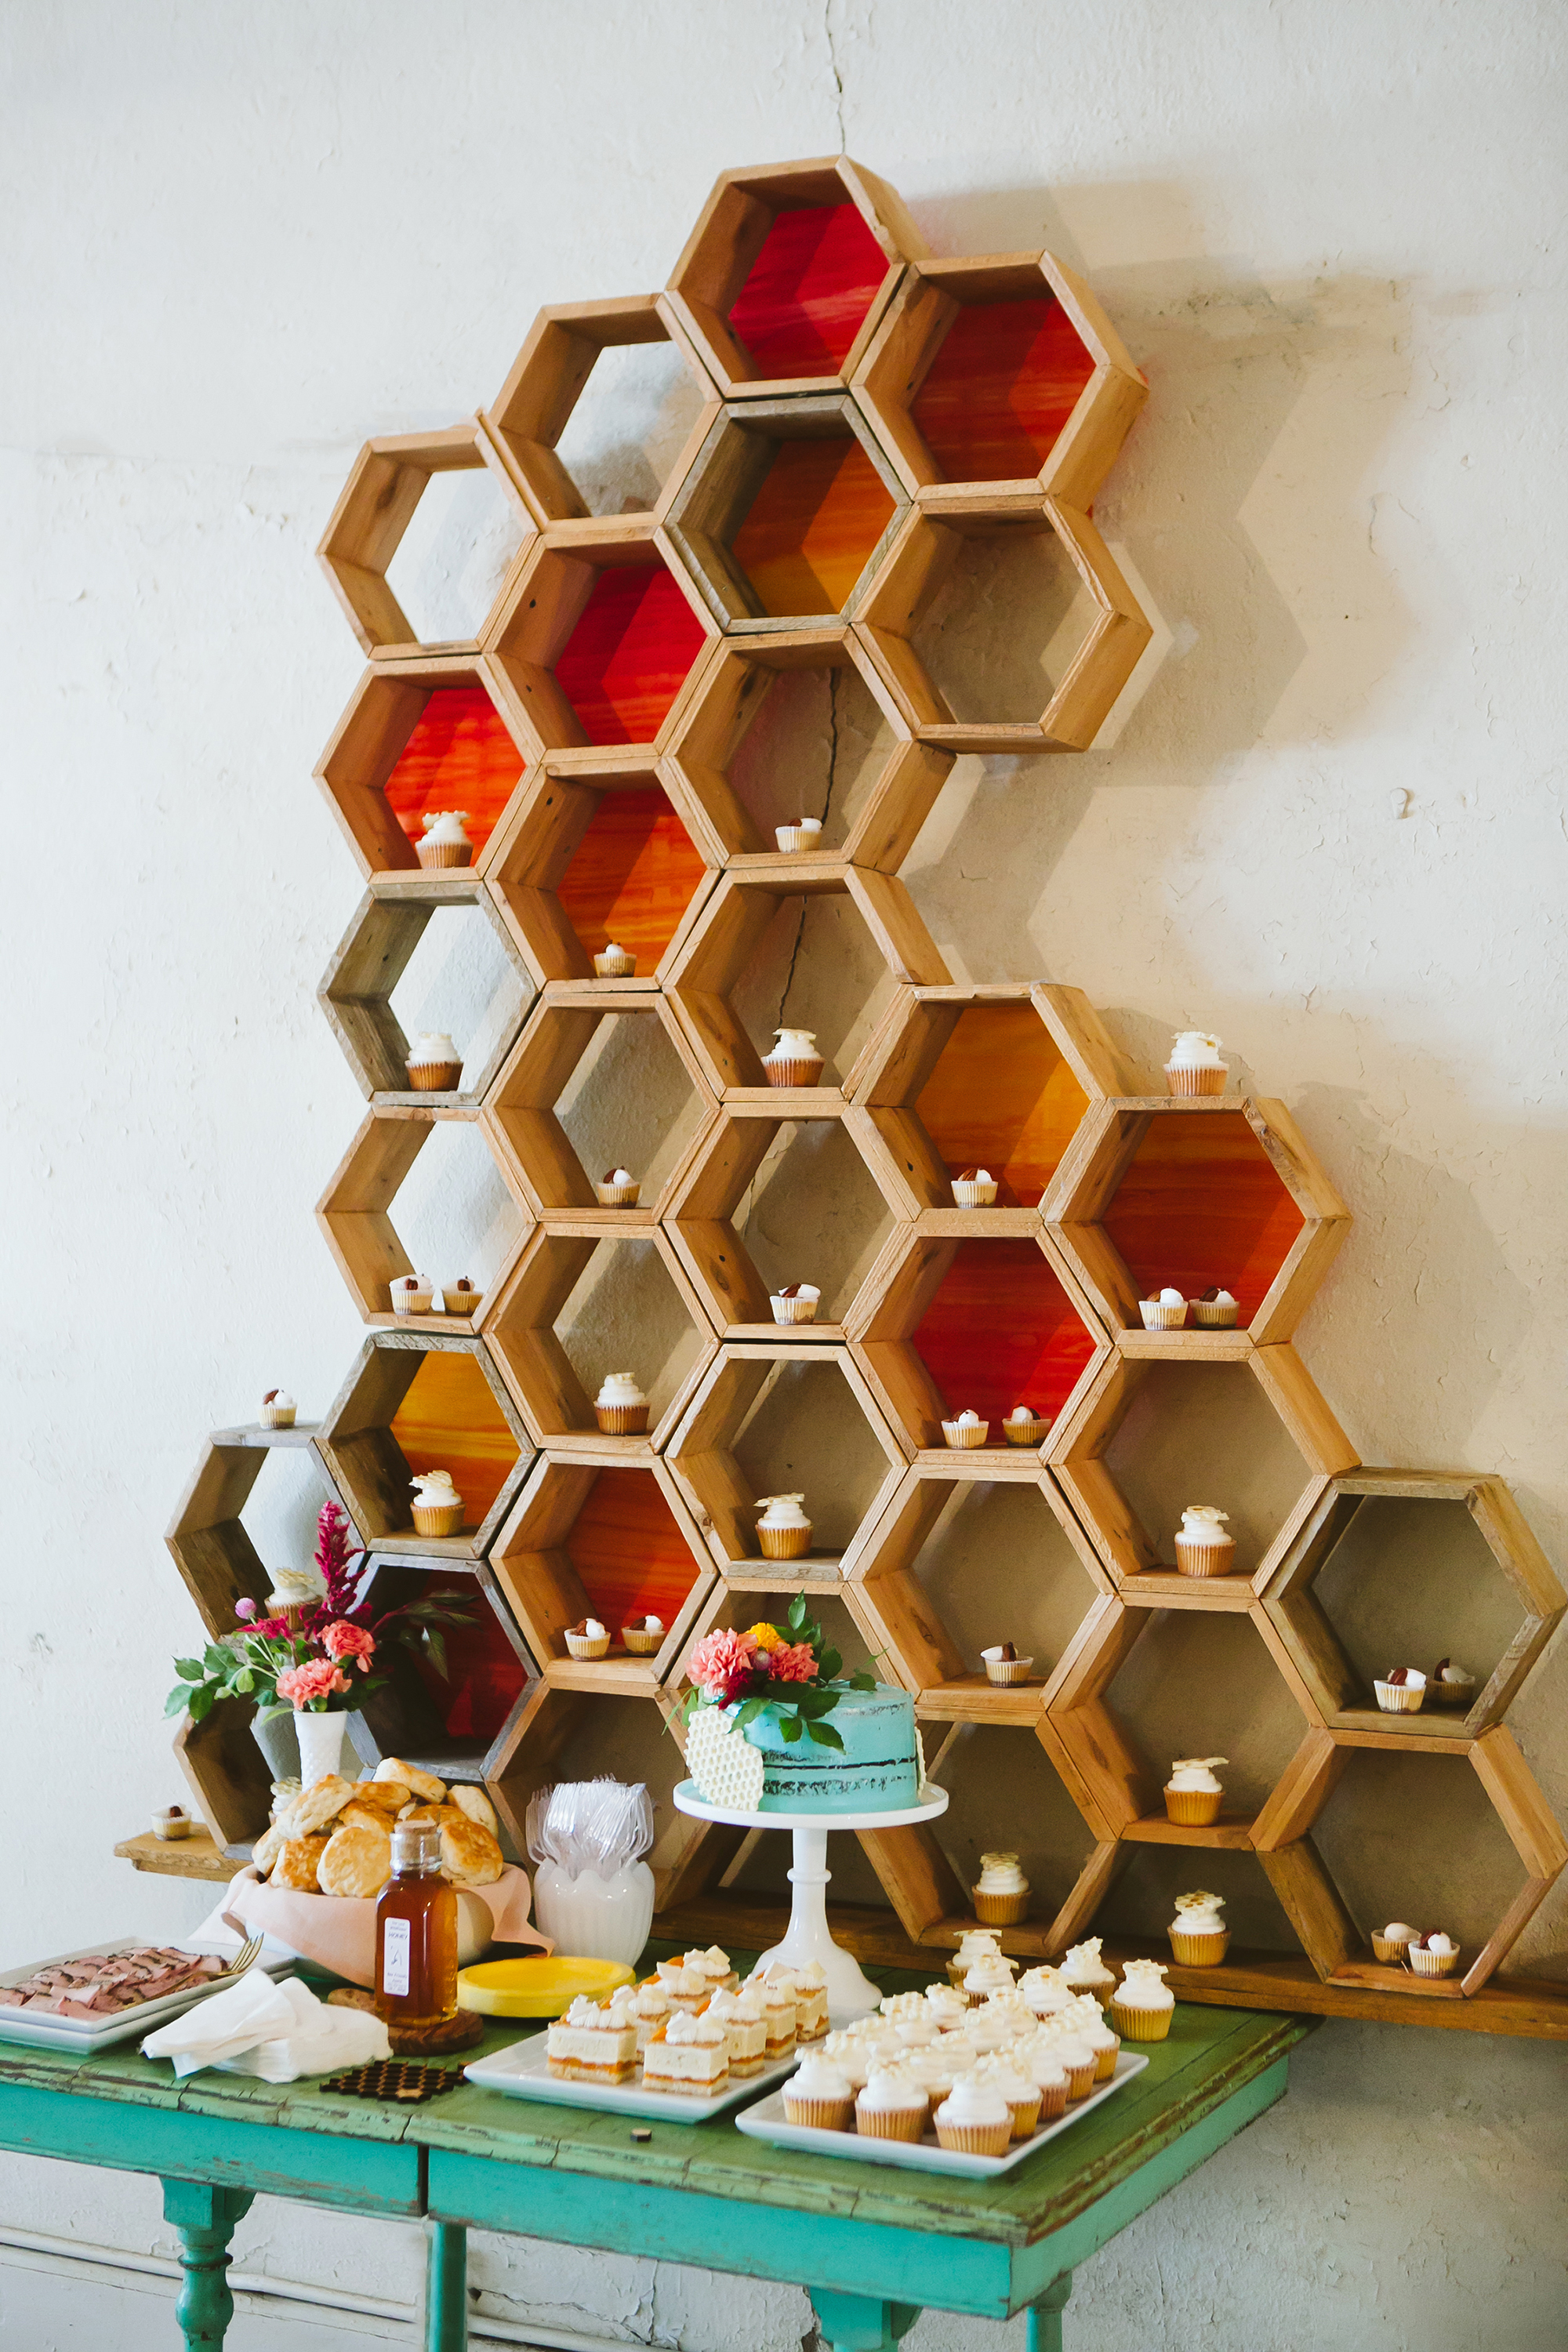 Honeycomb Wedding Inspiration, Dessert Backdrop in Honeycomb Shape